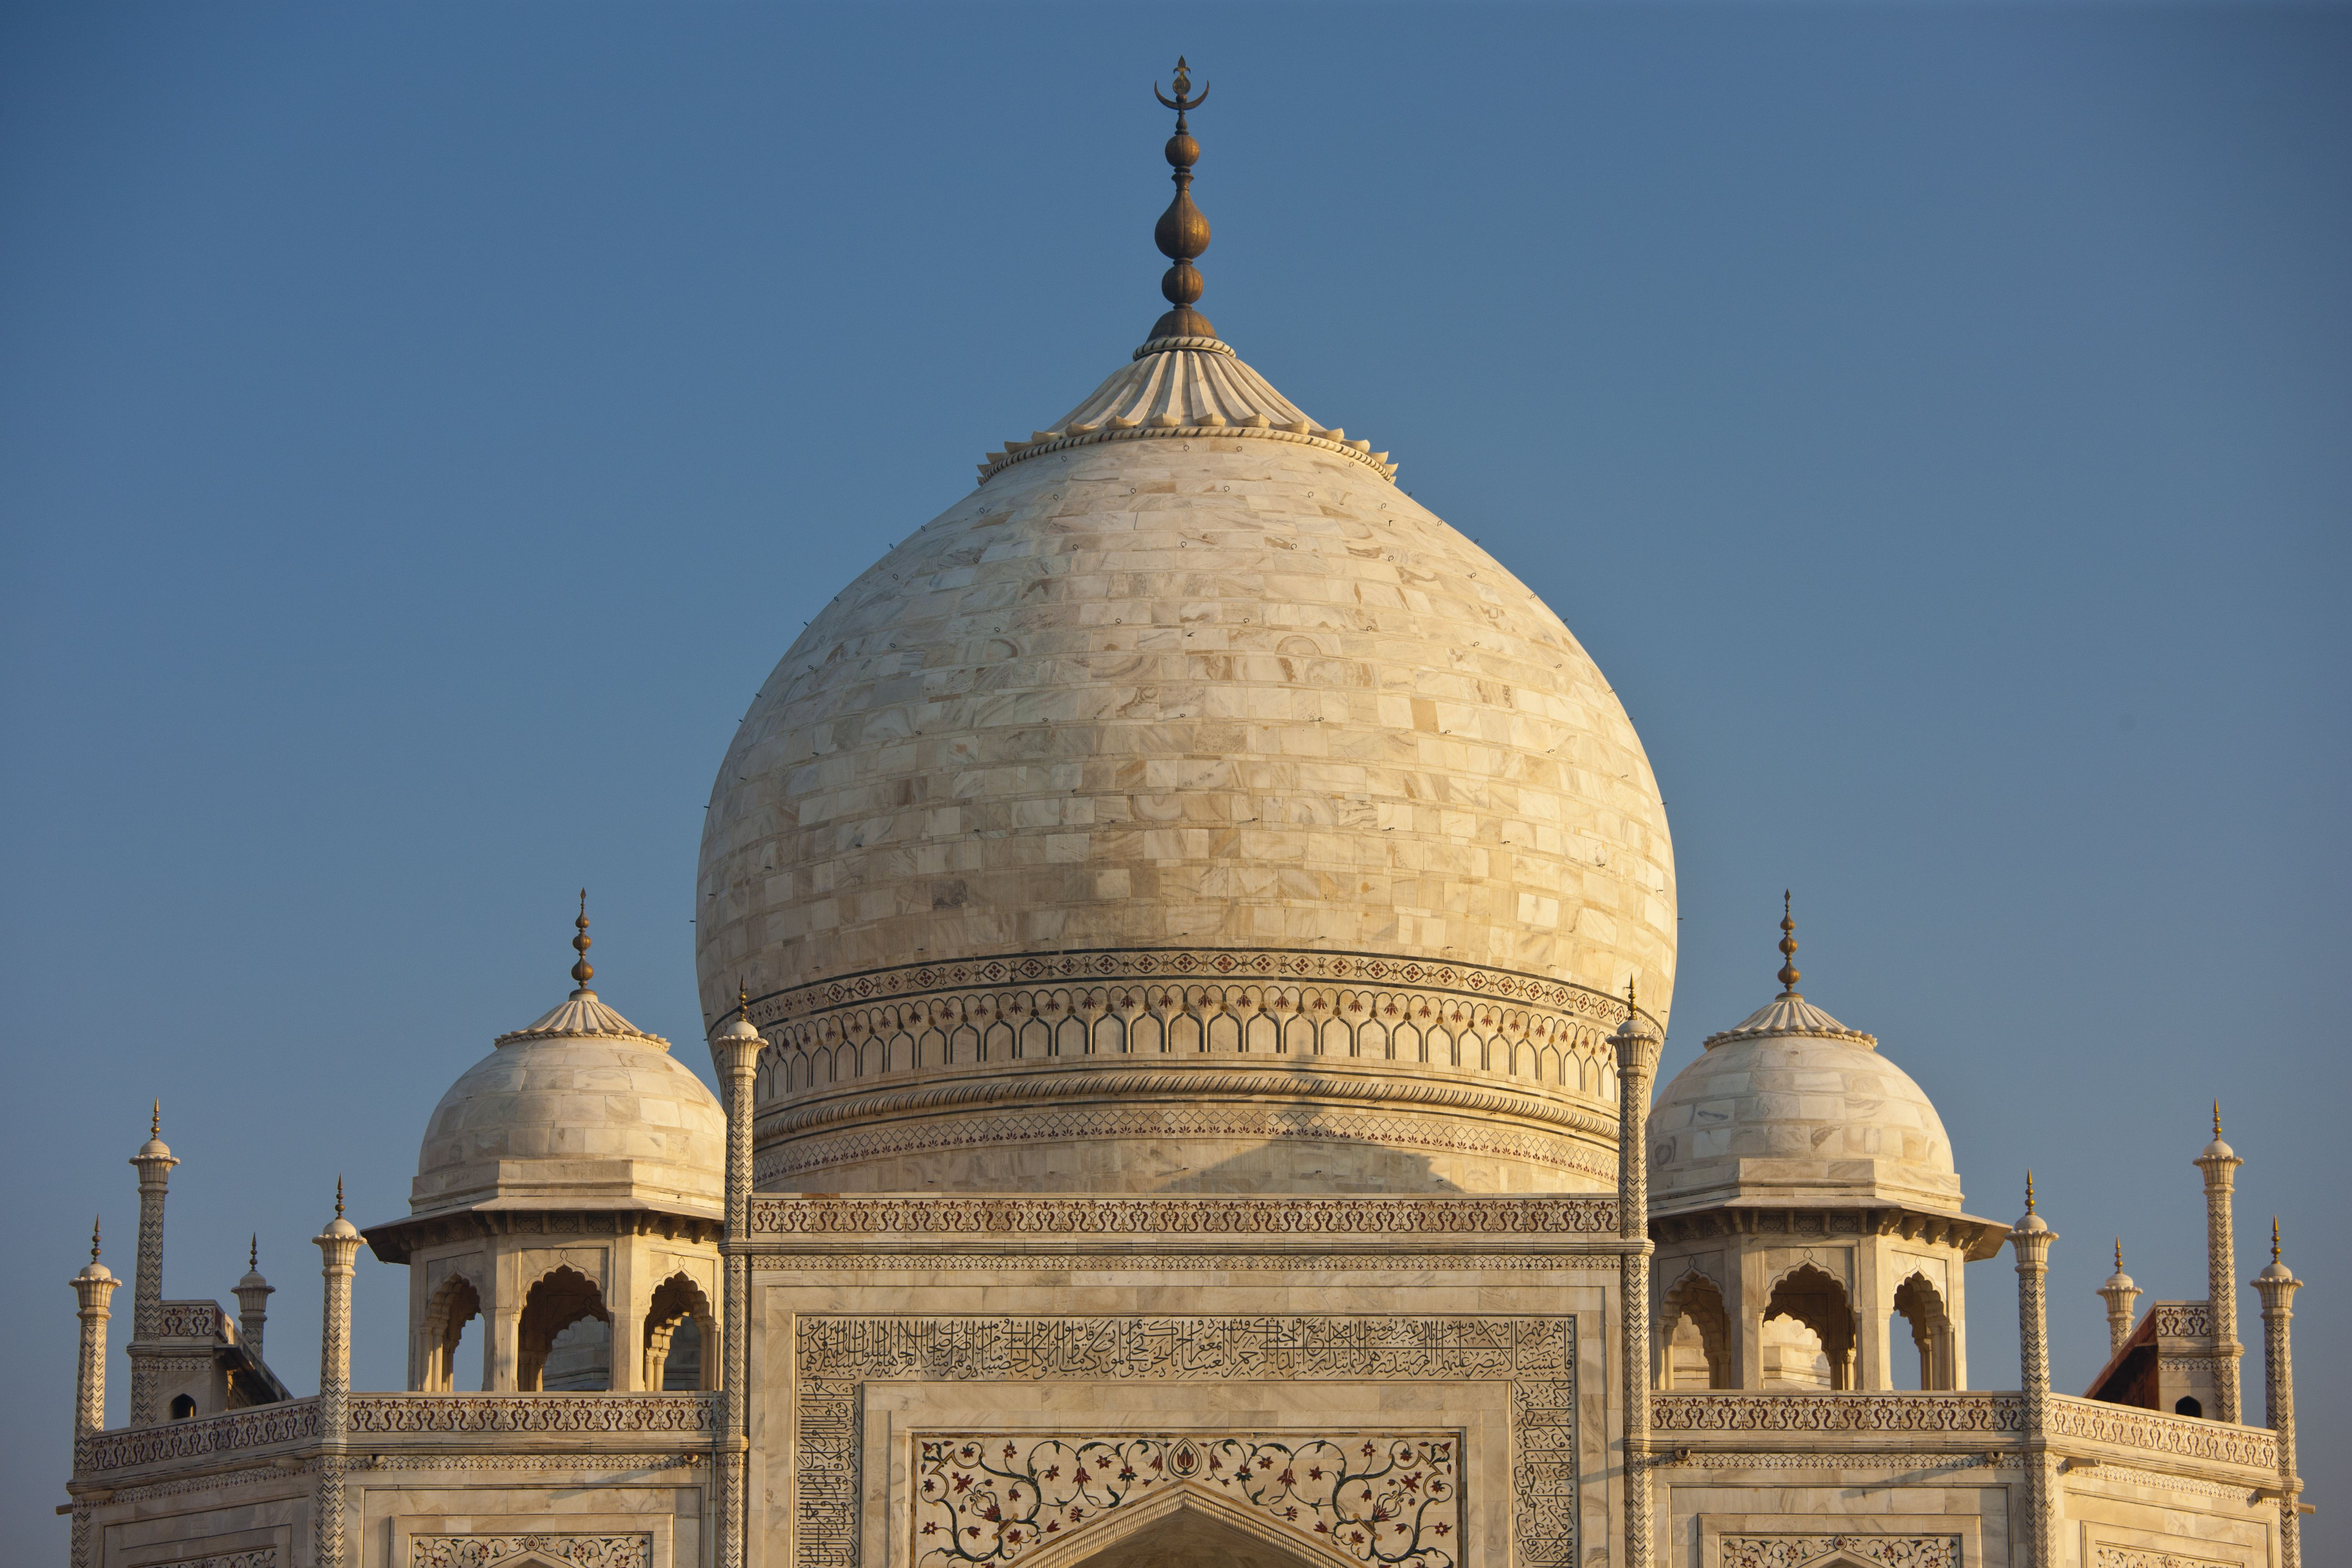 Maula Ali Shrine Wallpaper: 10 Of The Greatest Domes In The World